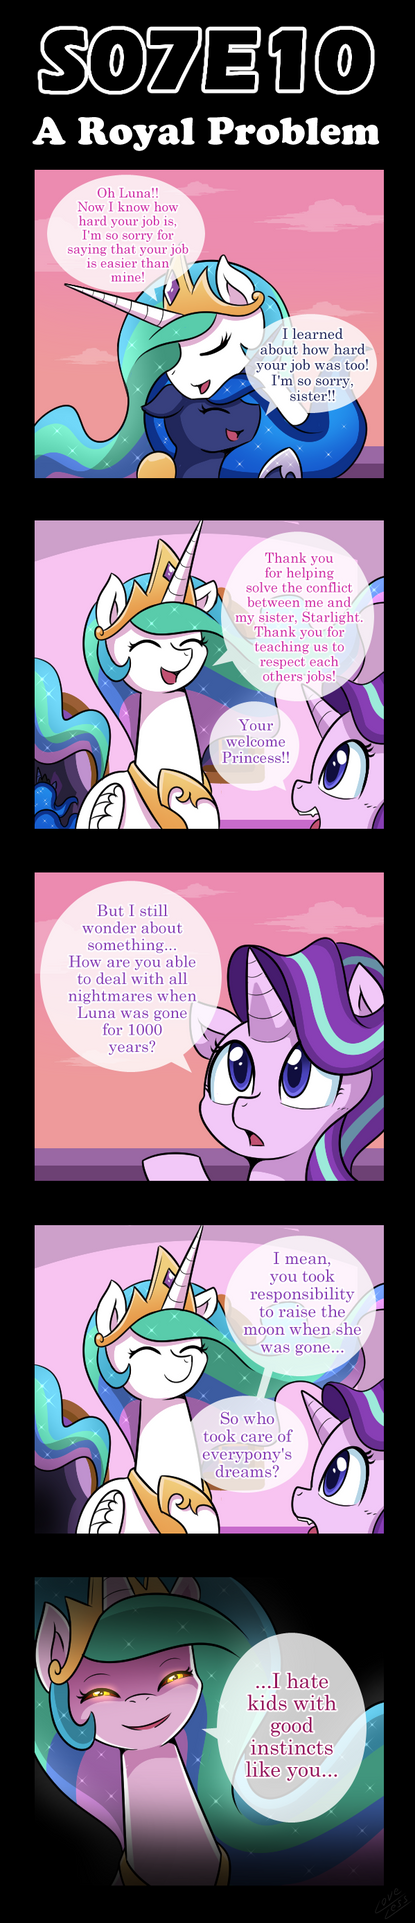 [S07E10] A Royal Problem [Comic] by vavacung